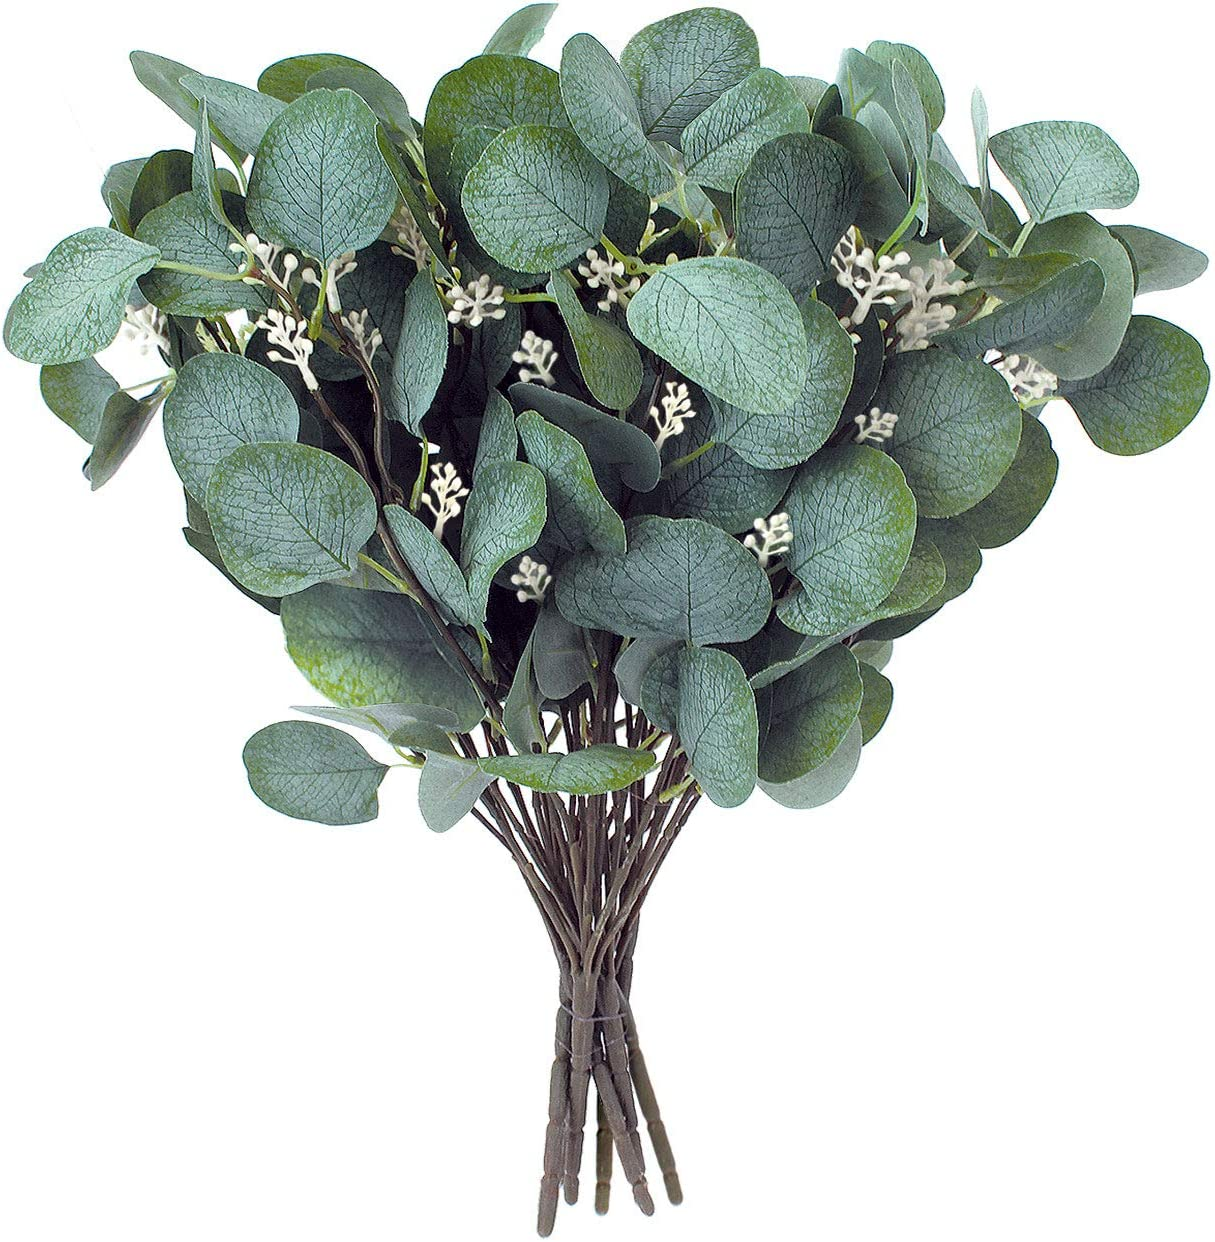 Artificial Greenery Stems – Faux Silk Eucalyptus Leaves White Seeded Green/Grey/Blue Floral 6 Picks / 5 Branches Each Floral Pick for Flower Arrangement Crafts, Holiday Centerpiece, Décor